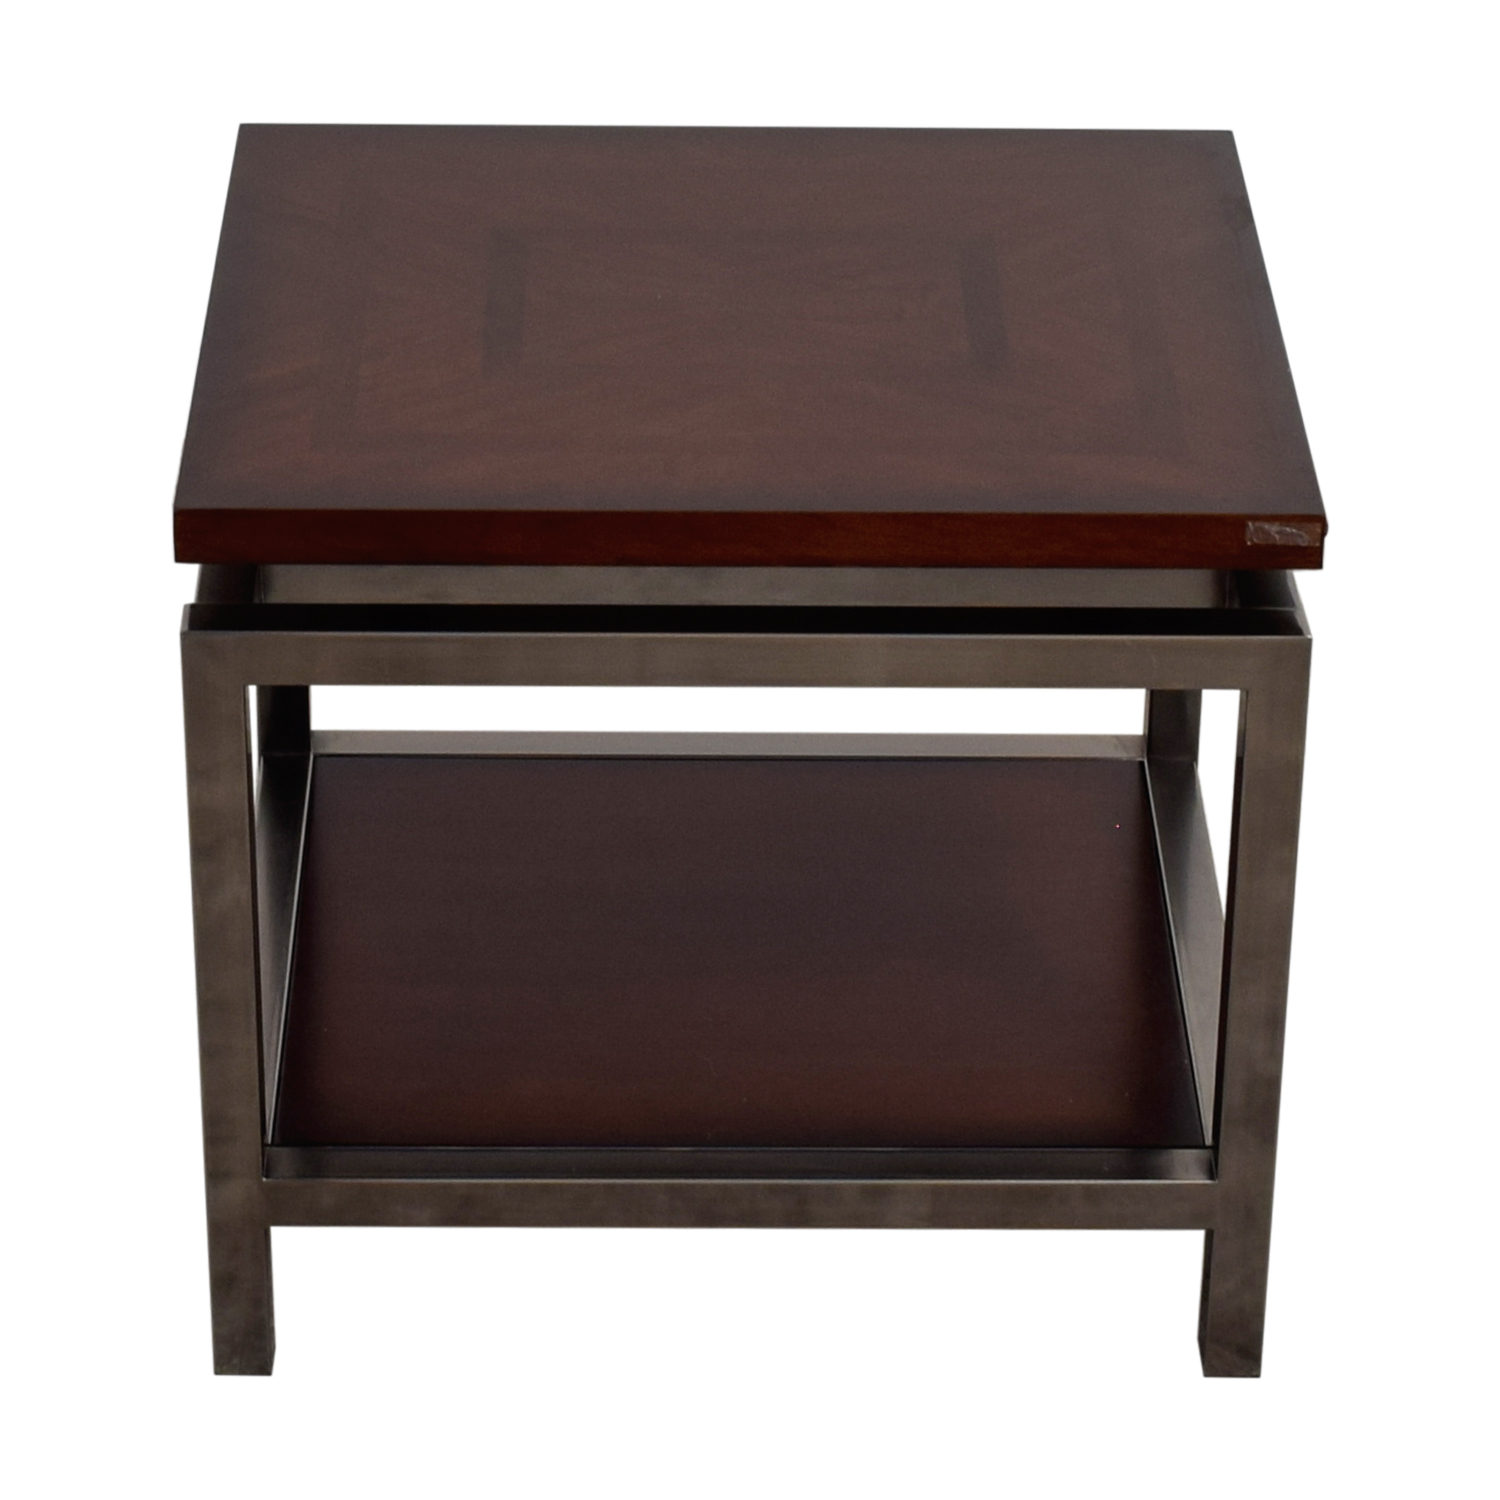 Raymour & Flanagan Wood and Chrome Side table sale